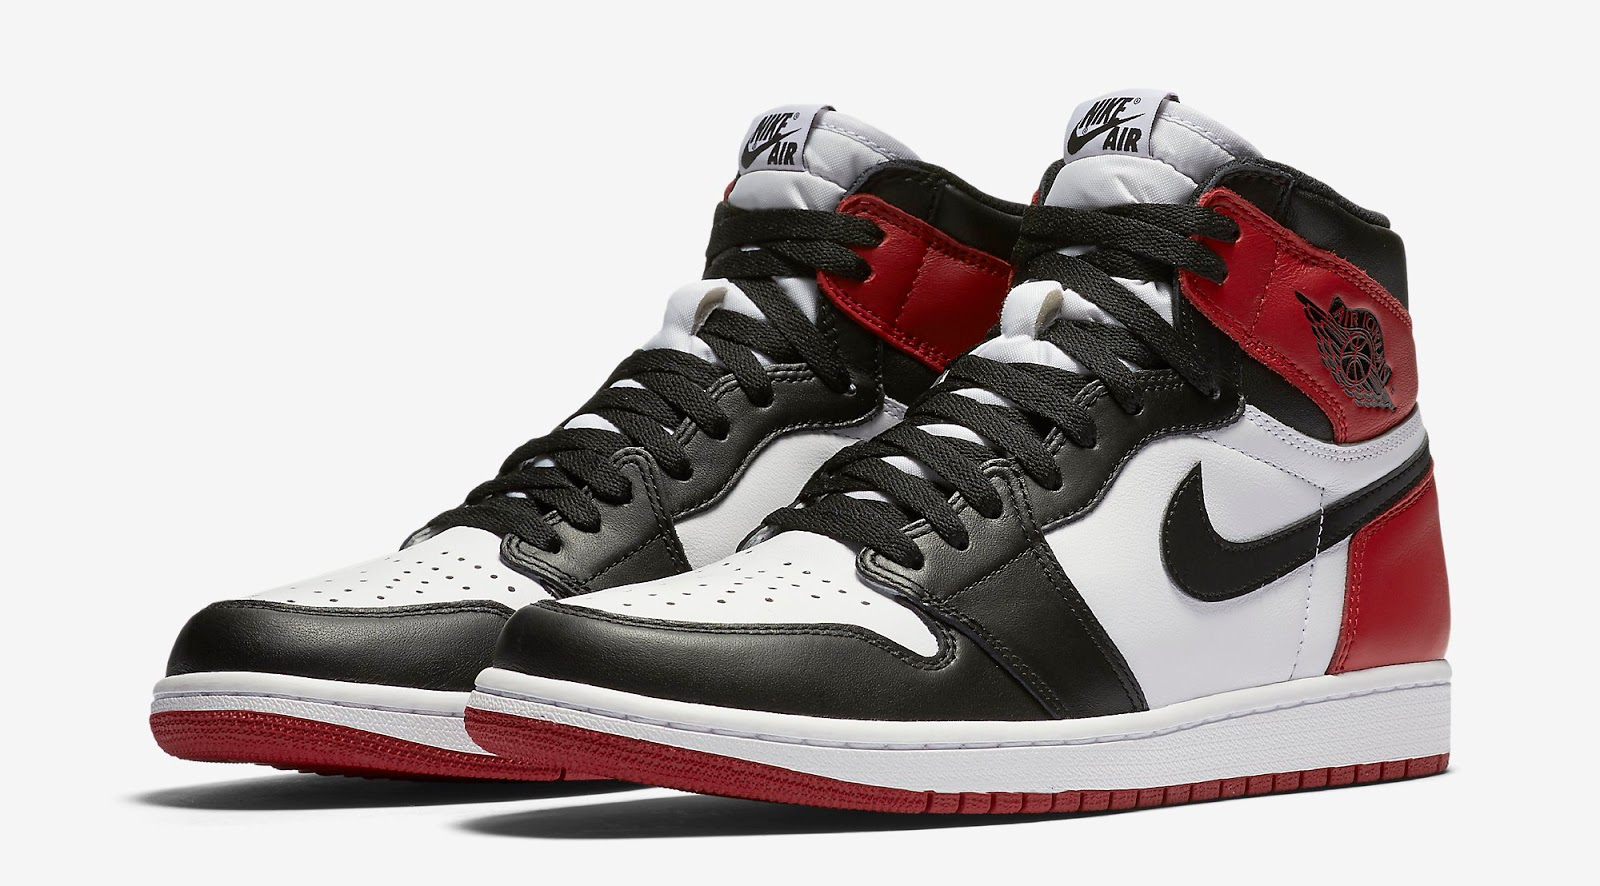 61fc1bcfc383 ajordanxi Your  1 Source For Sneaker Release Dates  Air Jordan 1 Retro High  OG